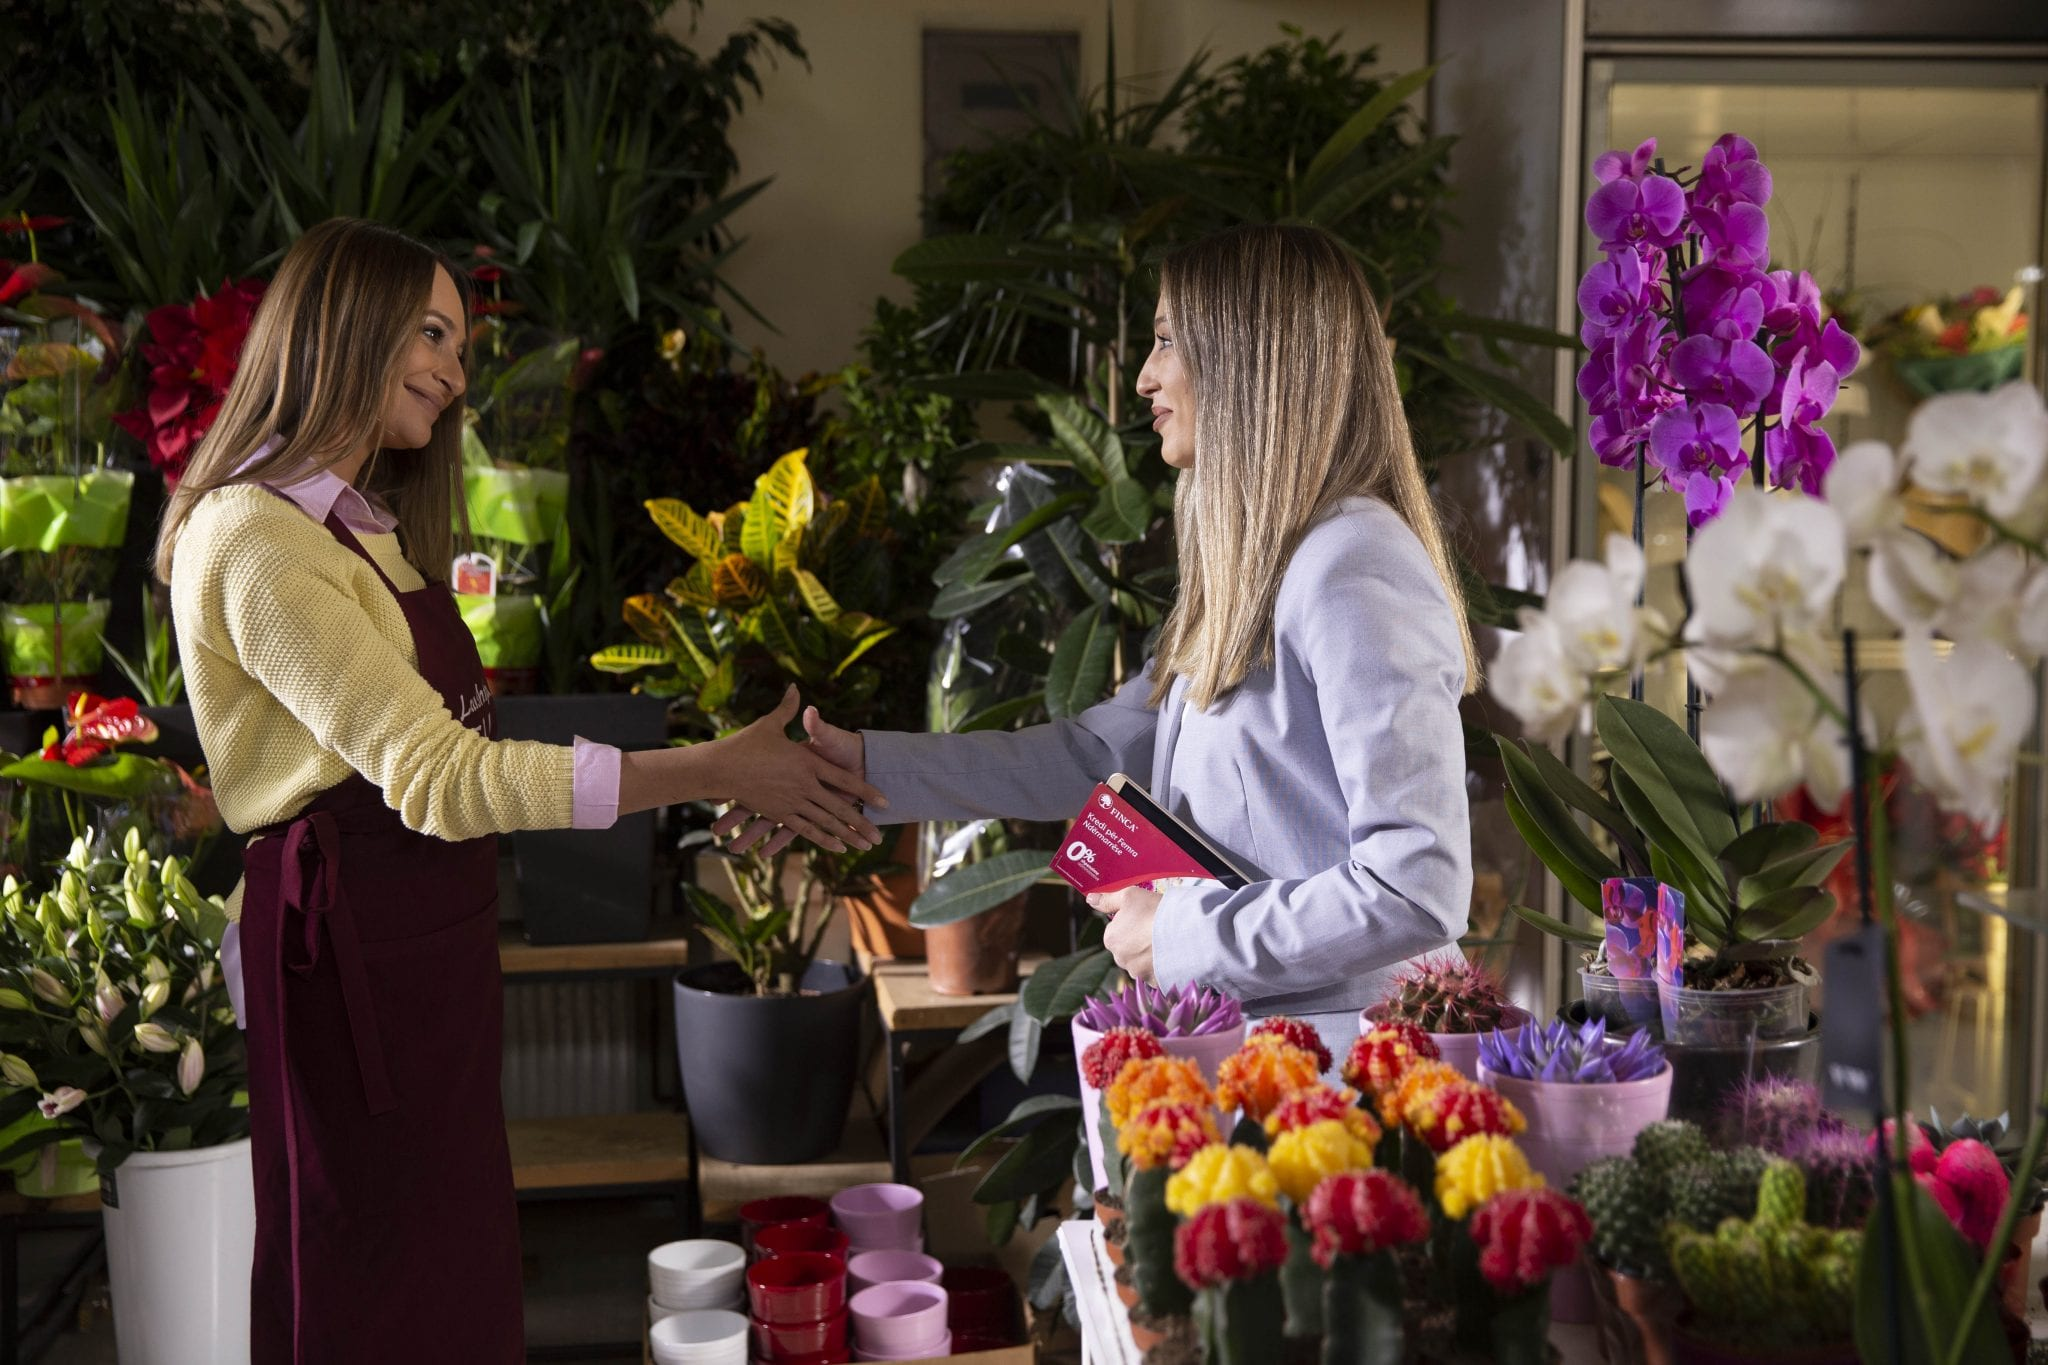 Female entrepreneurs in a flower shop promoting gender equality